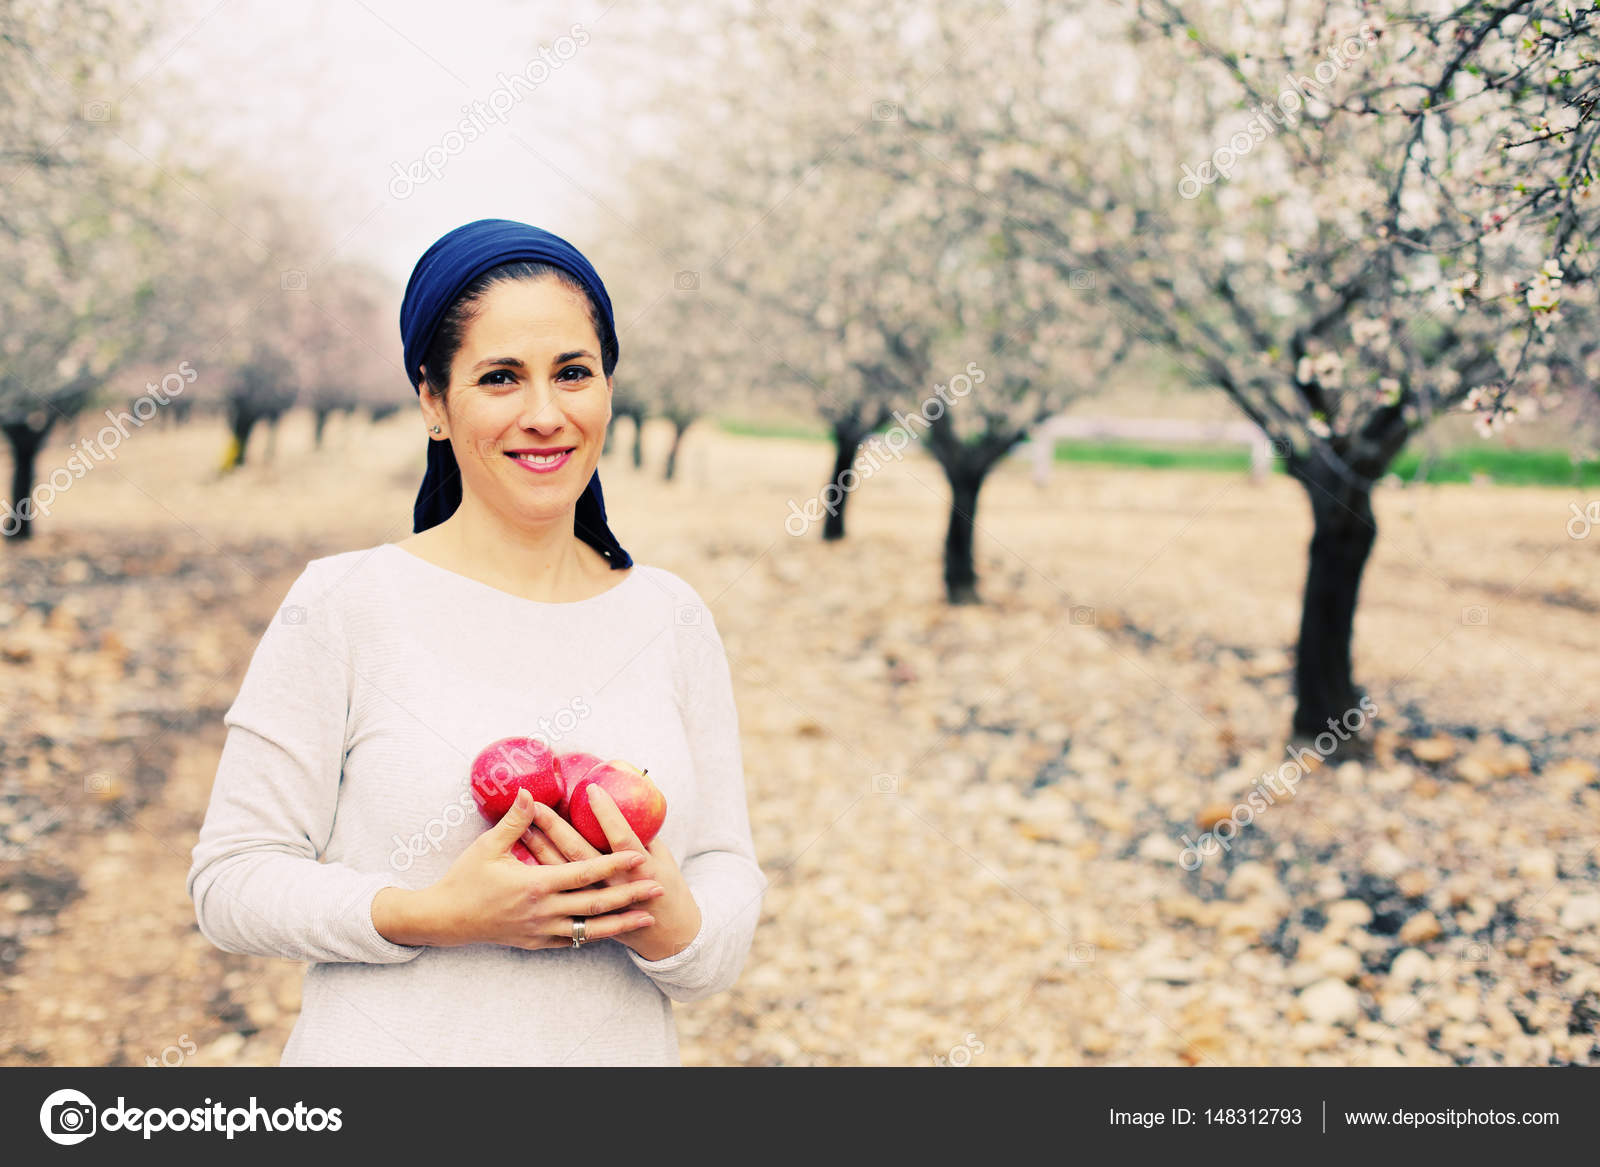 mature woman holding red apples — stock photo © dubova #148312793